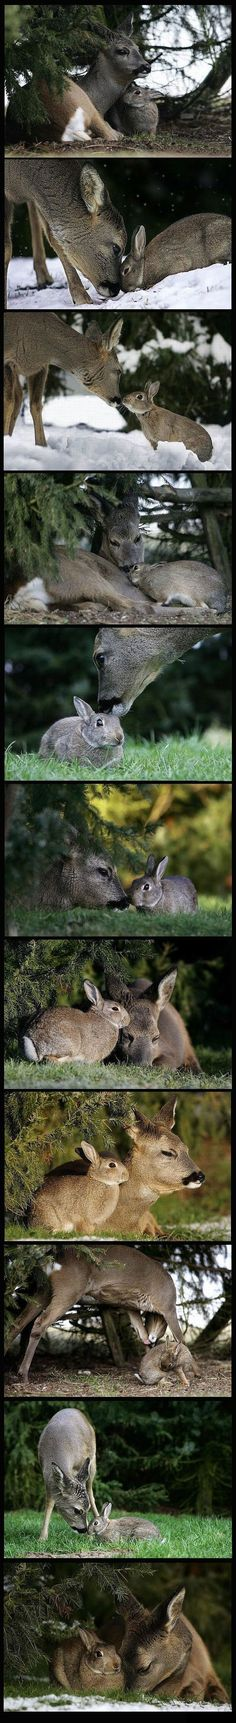 Real life Bambi and Thumper.